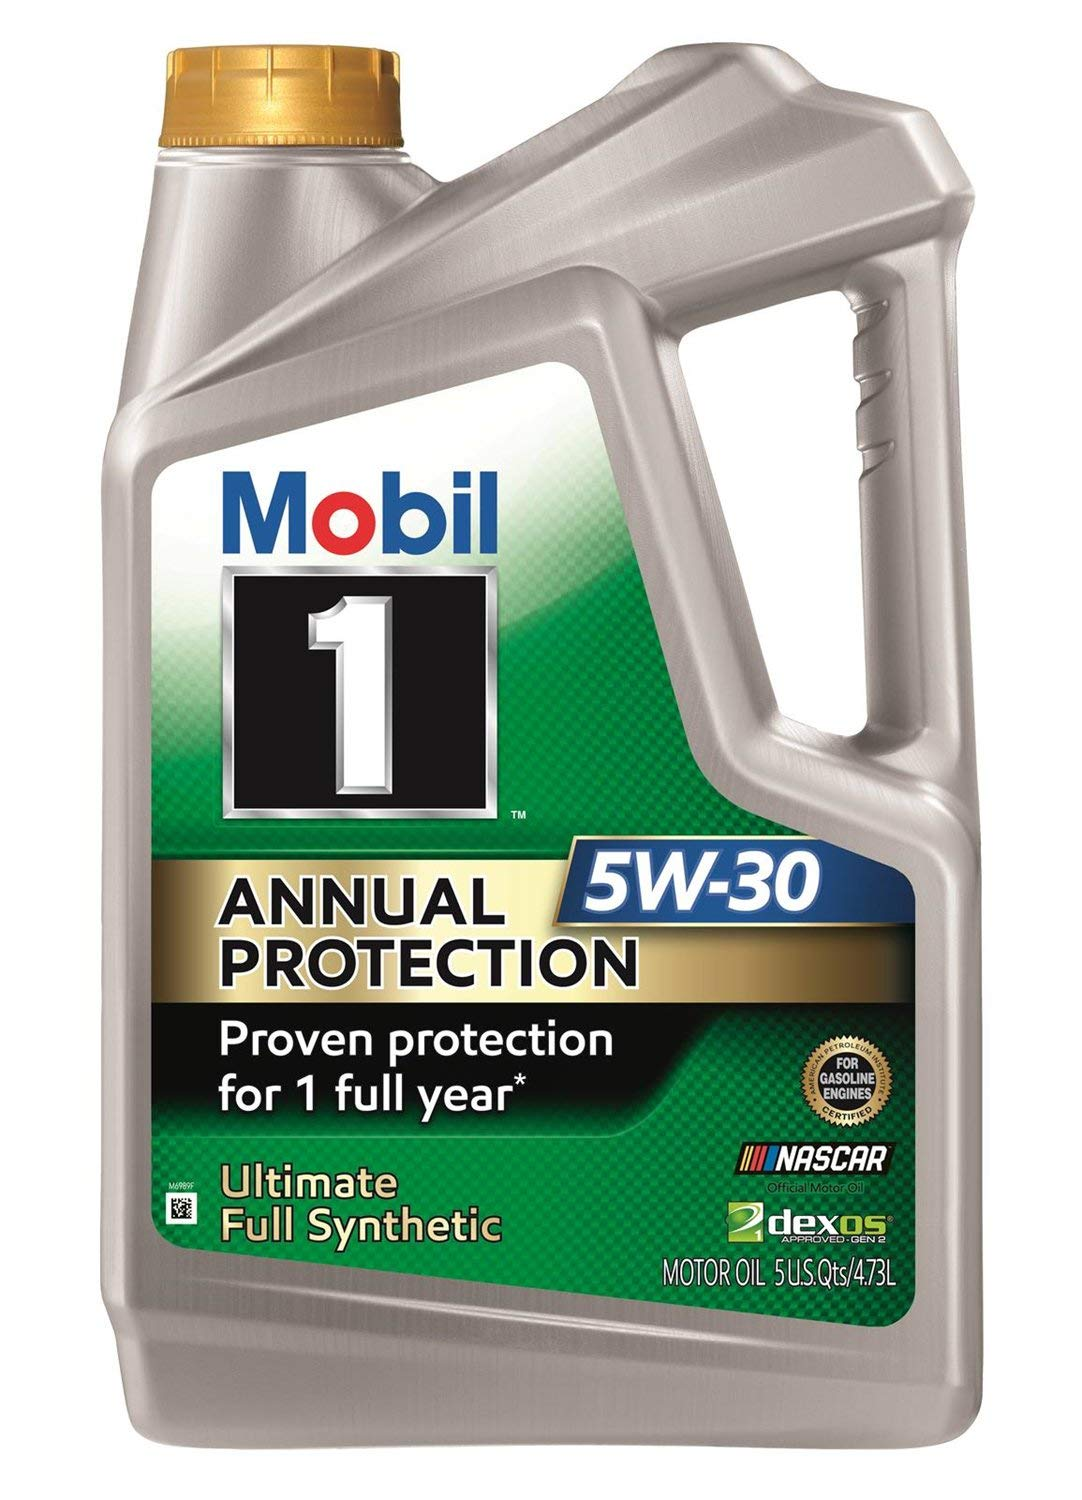 Mobil 1 Oil Change >> Amazon Com Mobil 1 122597 1 Synthetic Oil 160